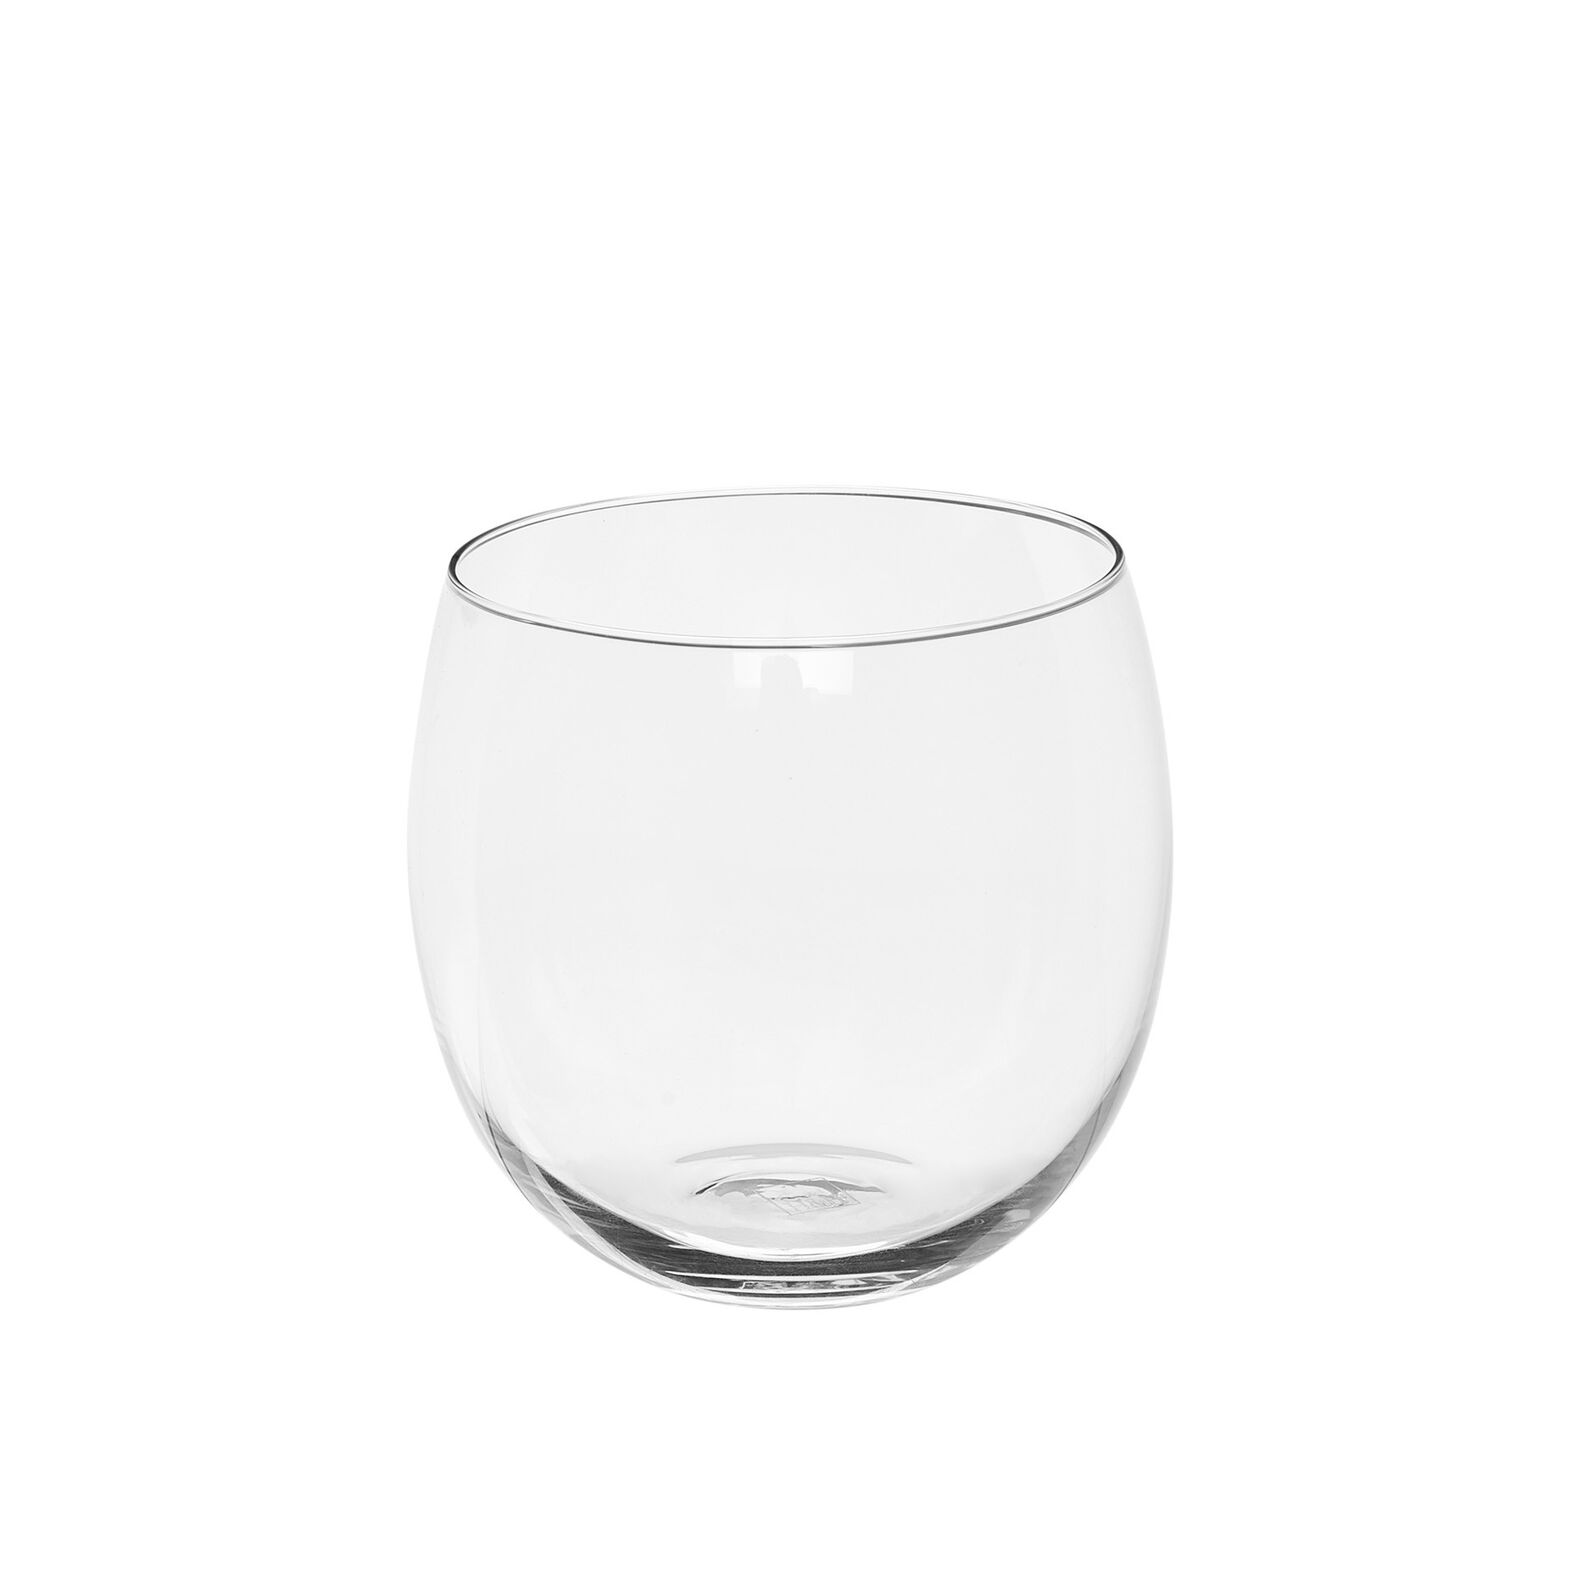 Set of 6 Bubbly water tumblers